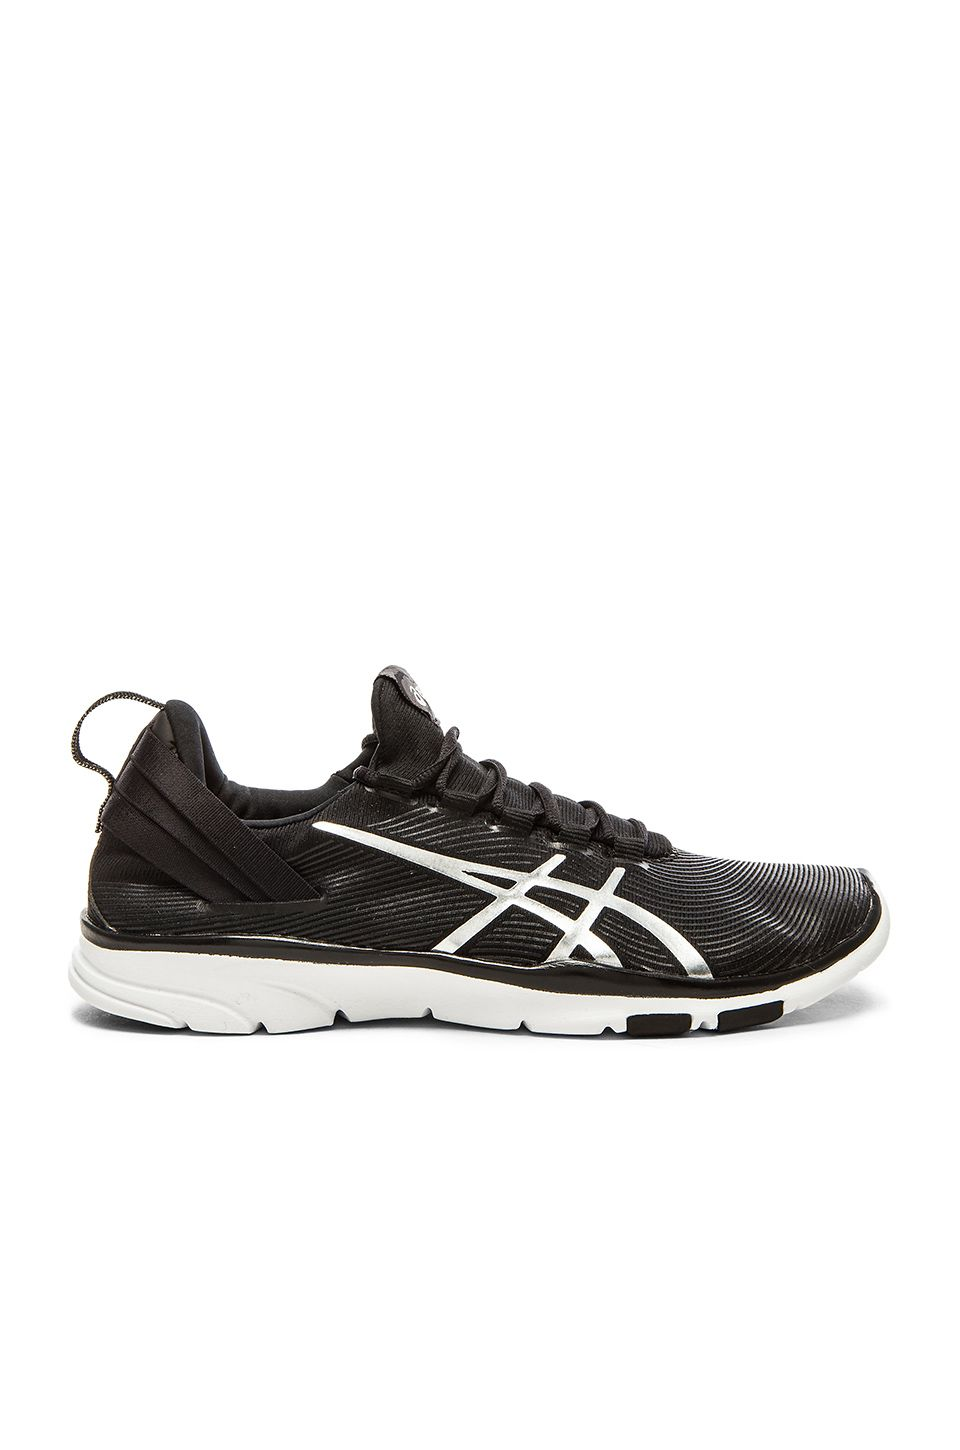 Asics Gel Fit Sana 2 Sneaker in Black, White & Silver